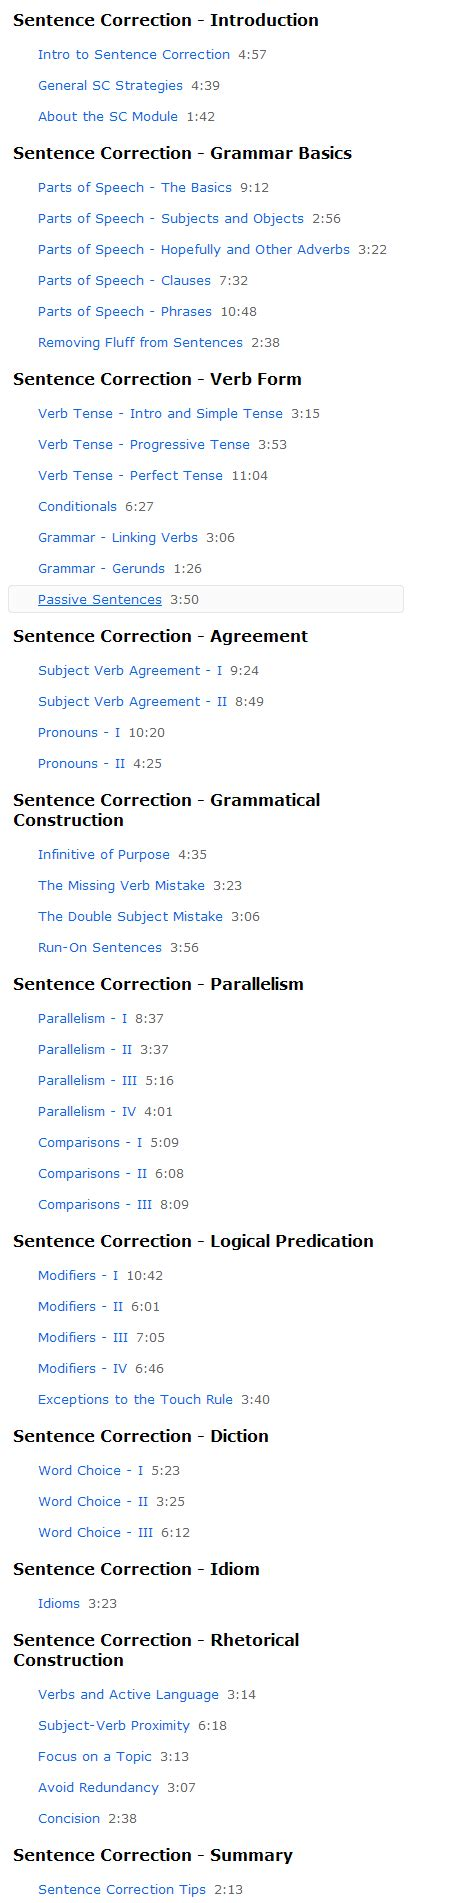 Sentence Correction Mba Cet by Restructuring Magoosh Sentence Correction Magoosh Gmat